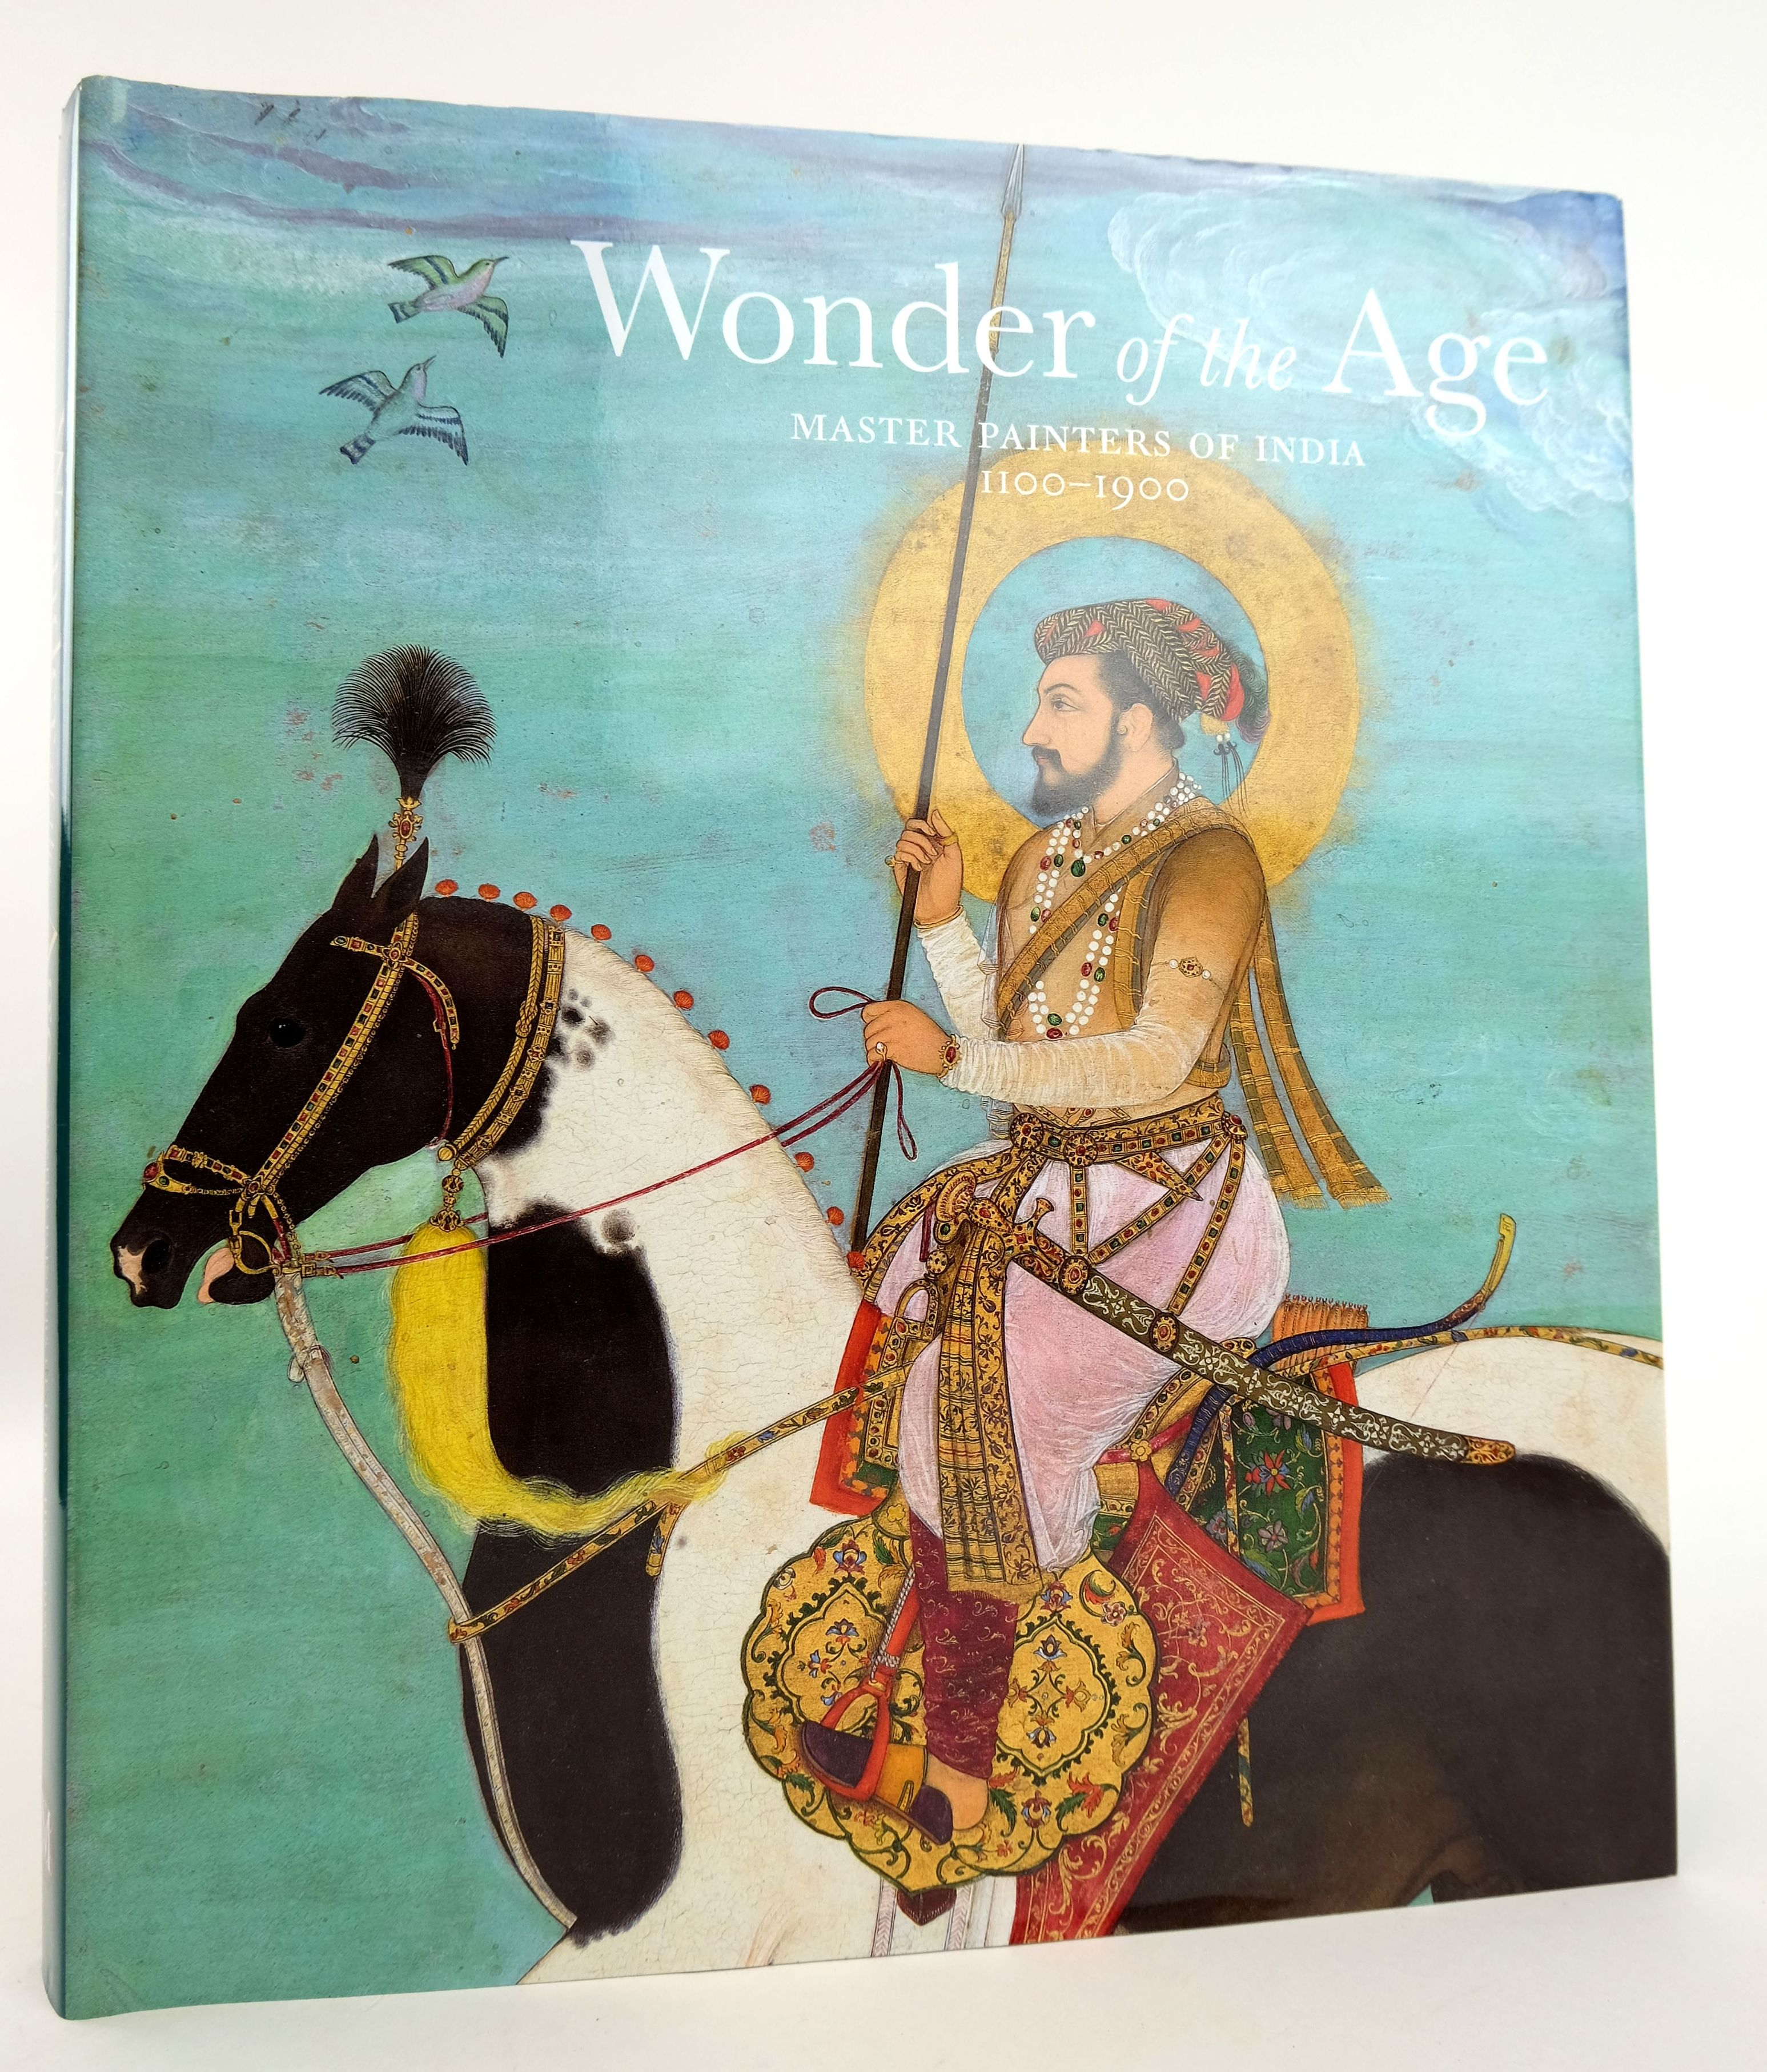 Photo of WONDER OF THE AGE: MASTER PAINTERS OF INDIA 1100-1900 written by Guy, John Britschgi, Jorrit published by The Metropolitan Museum of Art (STOCK CODE: 1818908)  for sale by Stella & Rose's Books